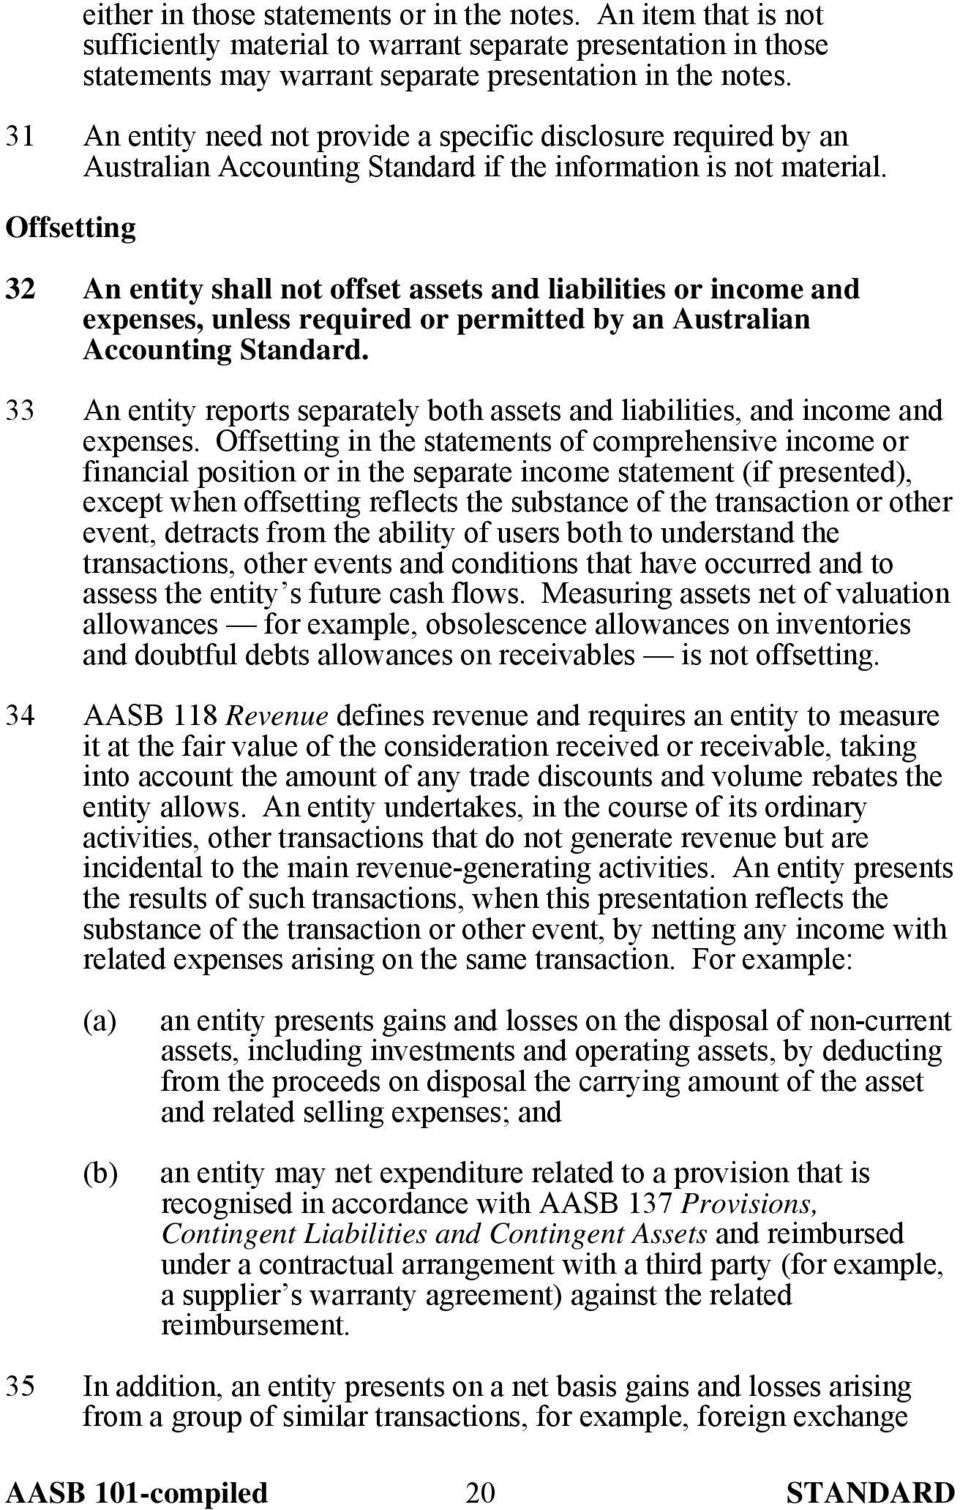 Offsetting 32 An entity shall not offset assets and liabilities or income and expenses, unless required or permitted by an Australian Accounting Standard.